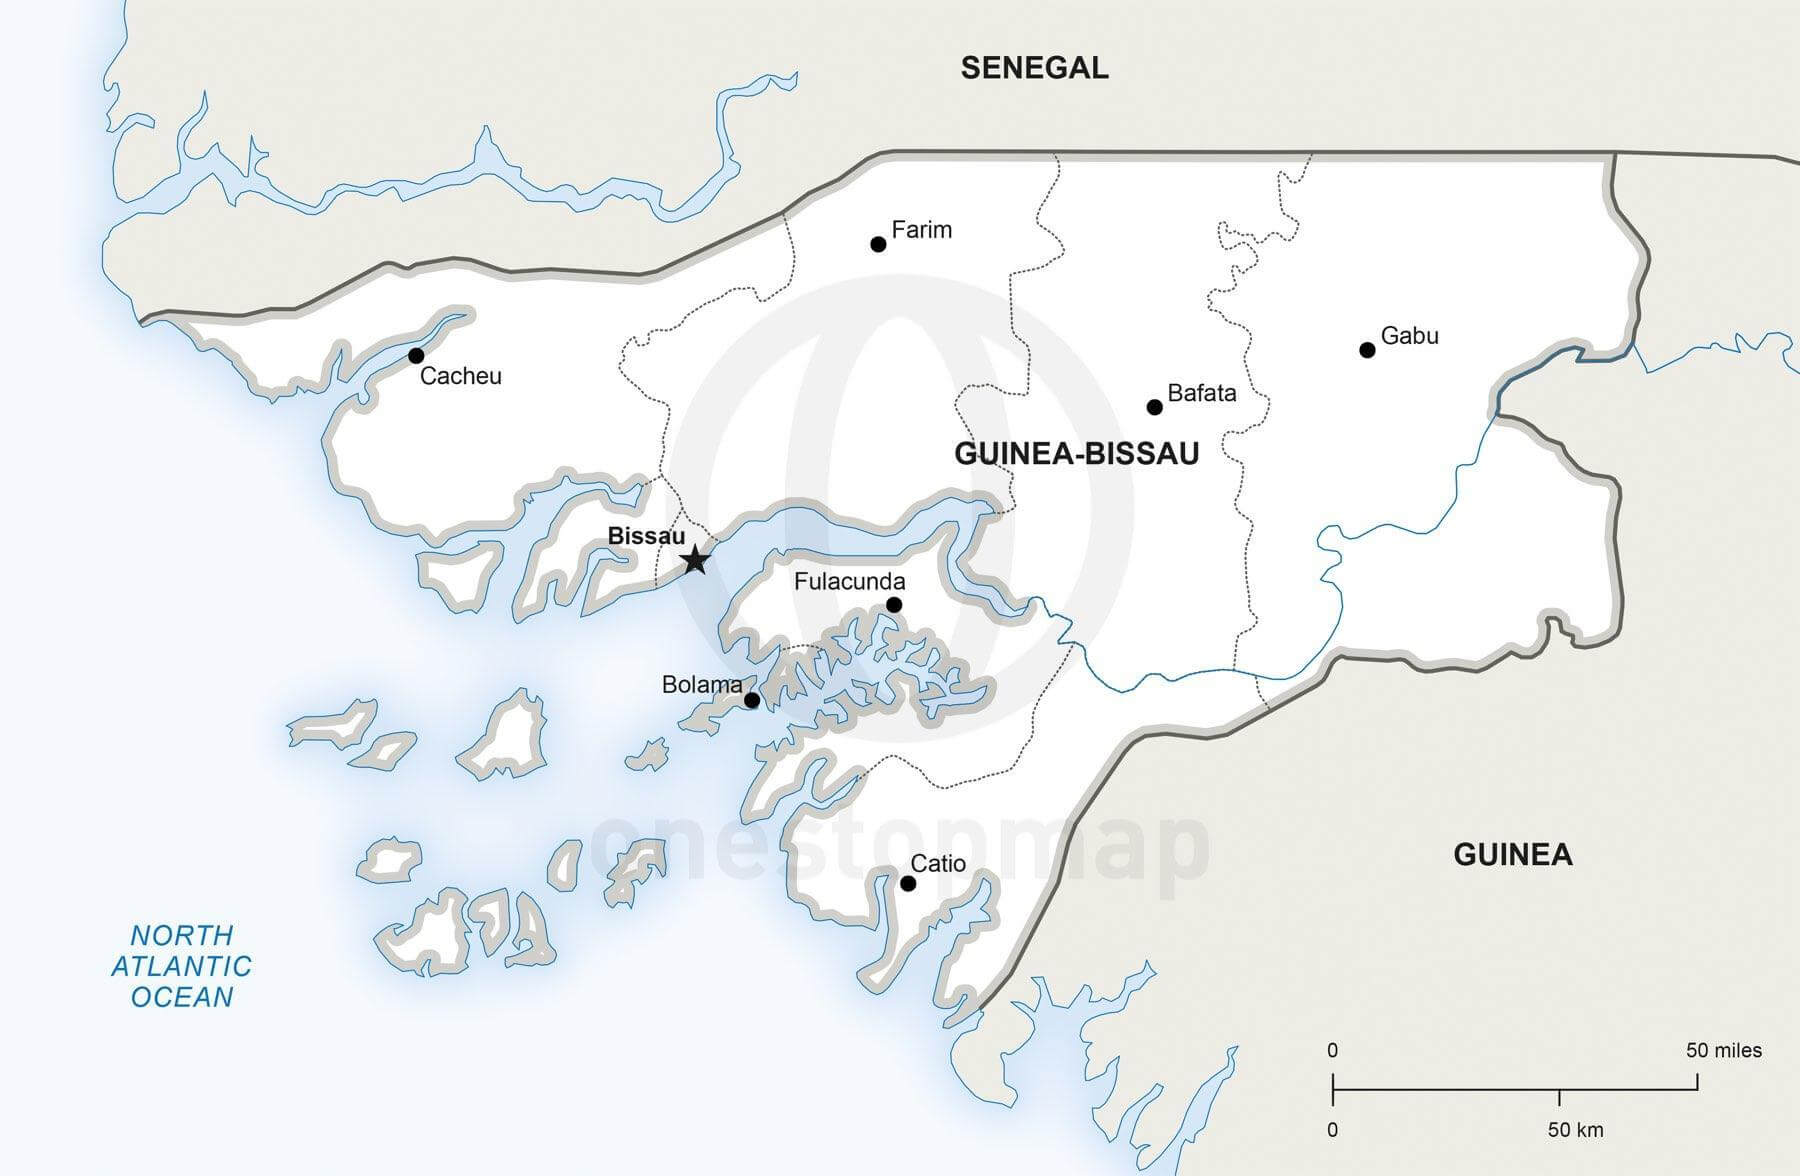 Map of Guinea-Bissau political